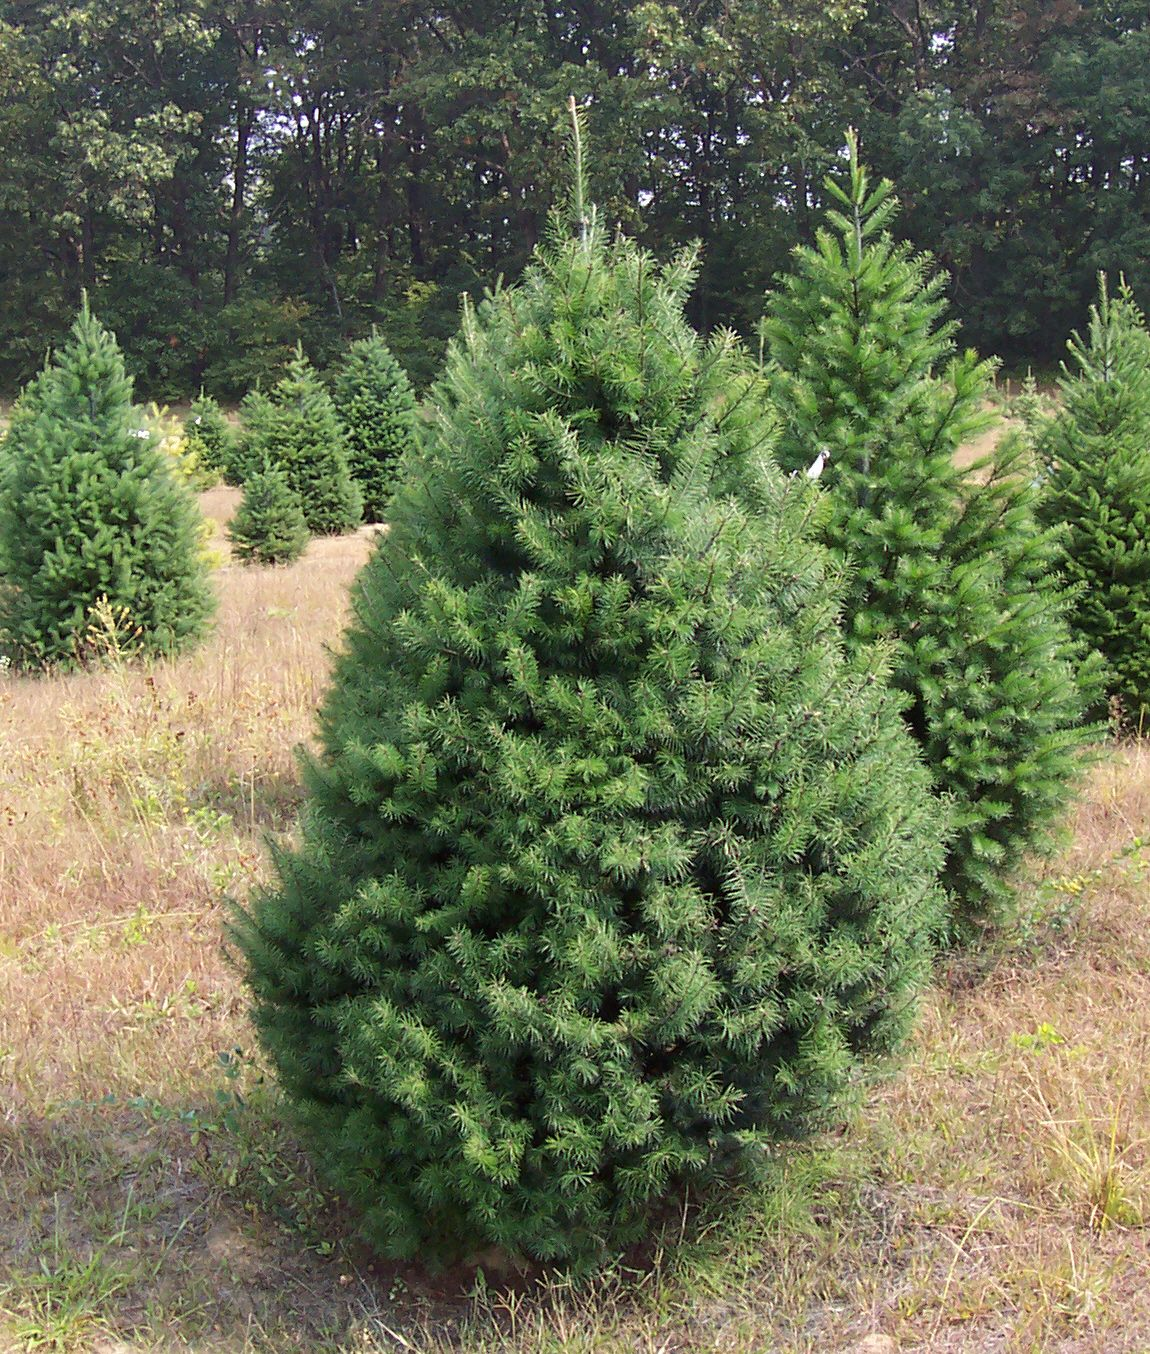 in 2012 46 million christmas tree seedlings were planted by us growers more than 2000 trees are usually planted per acre on average 1000 1500 of - How Many Christmas Trees Per Acre